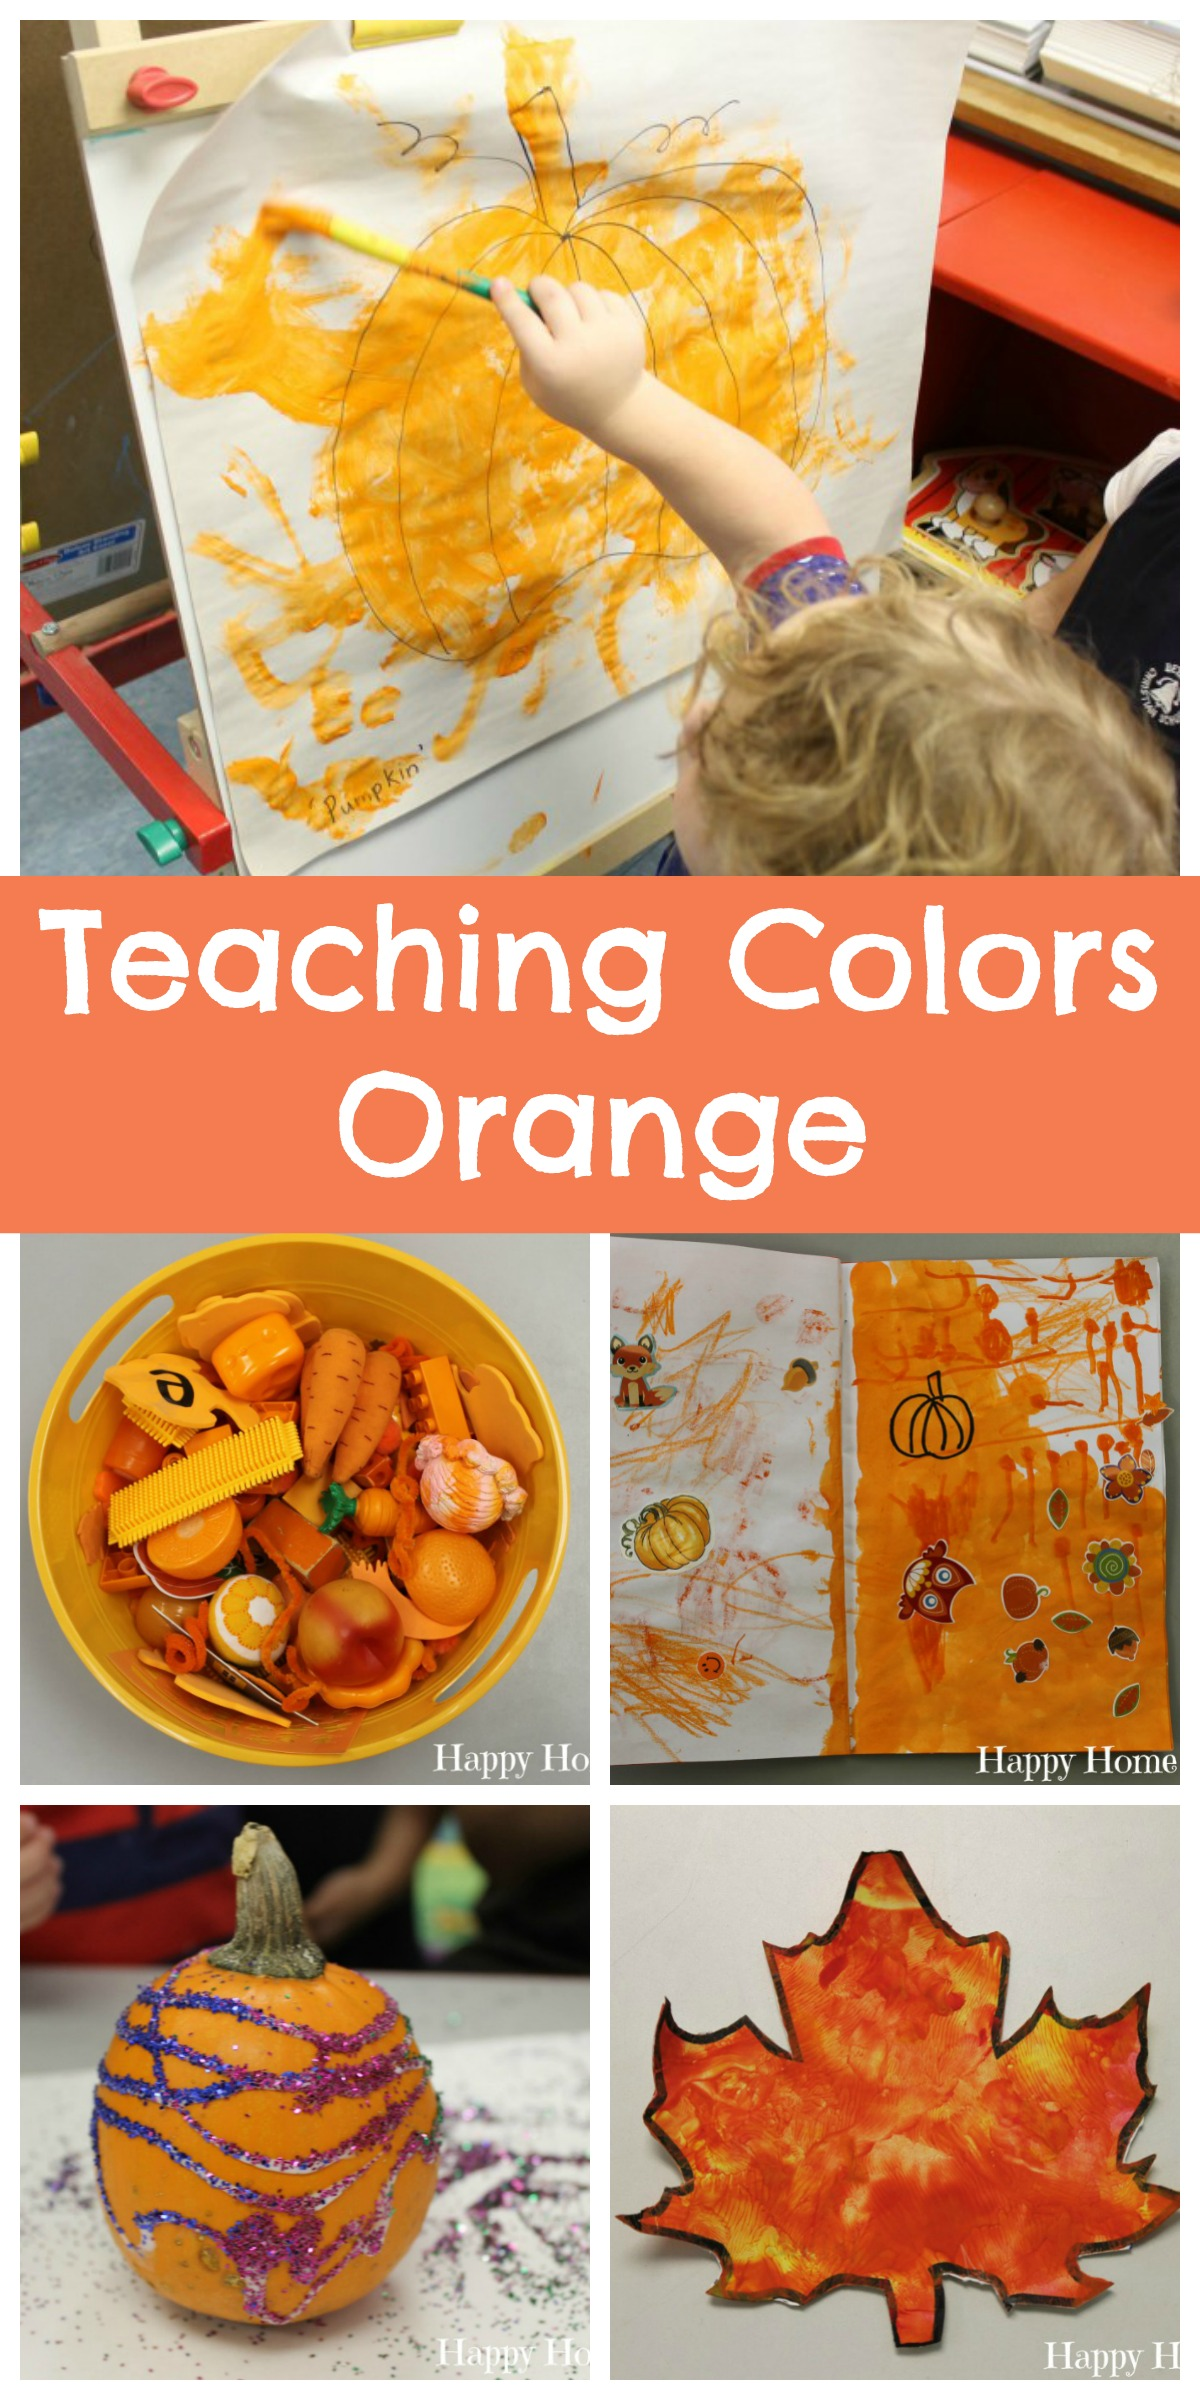 Teaching Colors